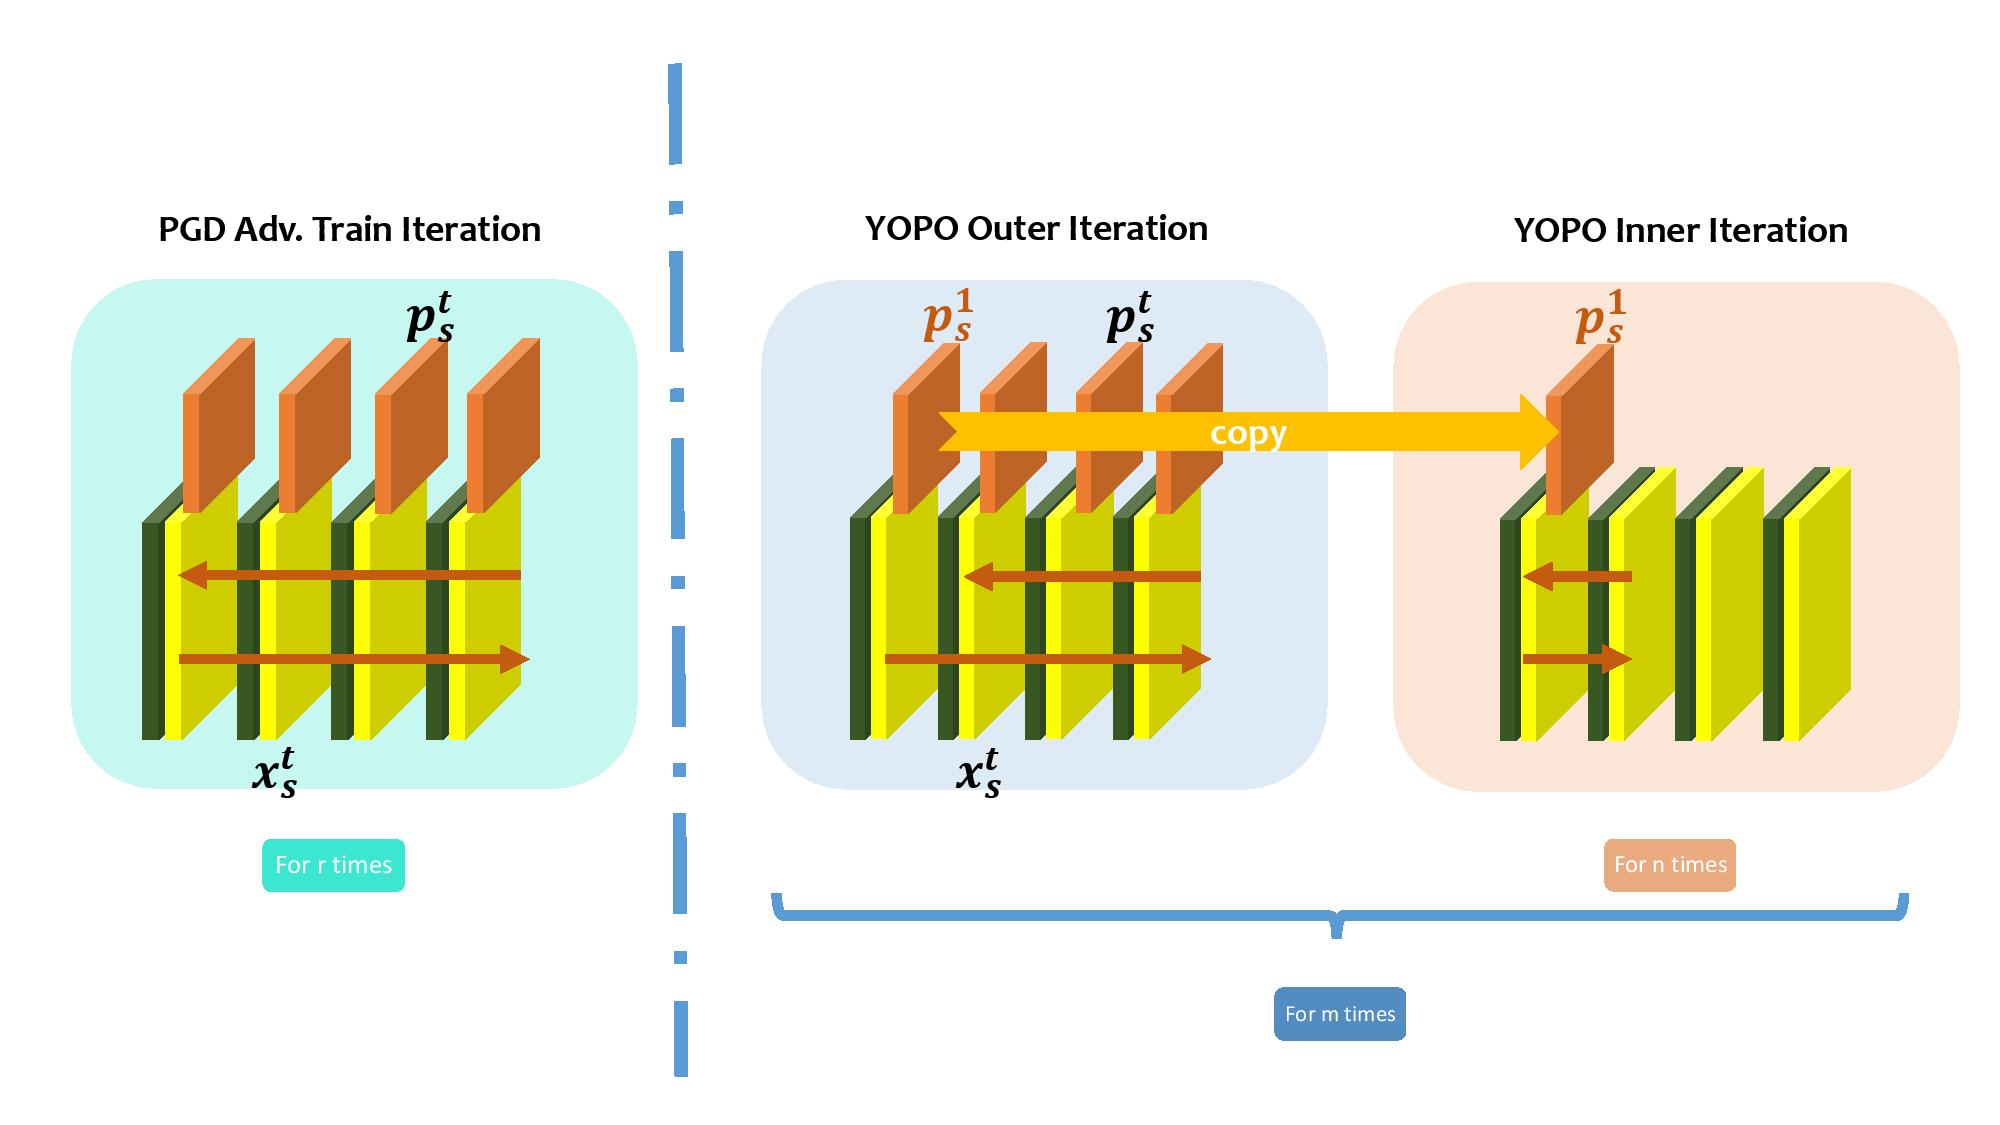 The Pipeline of YOPO